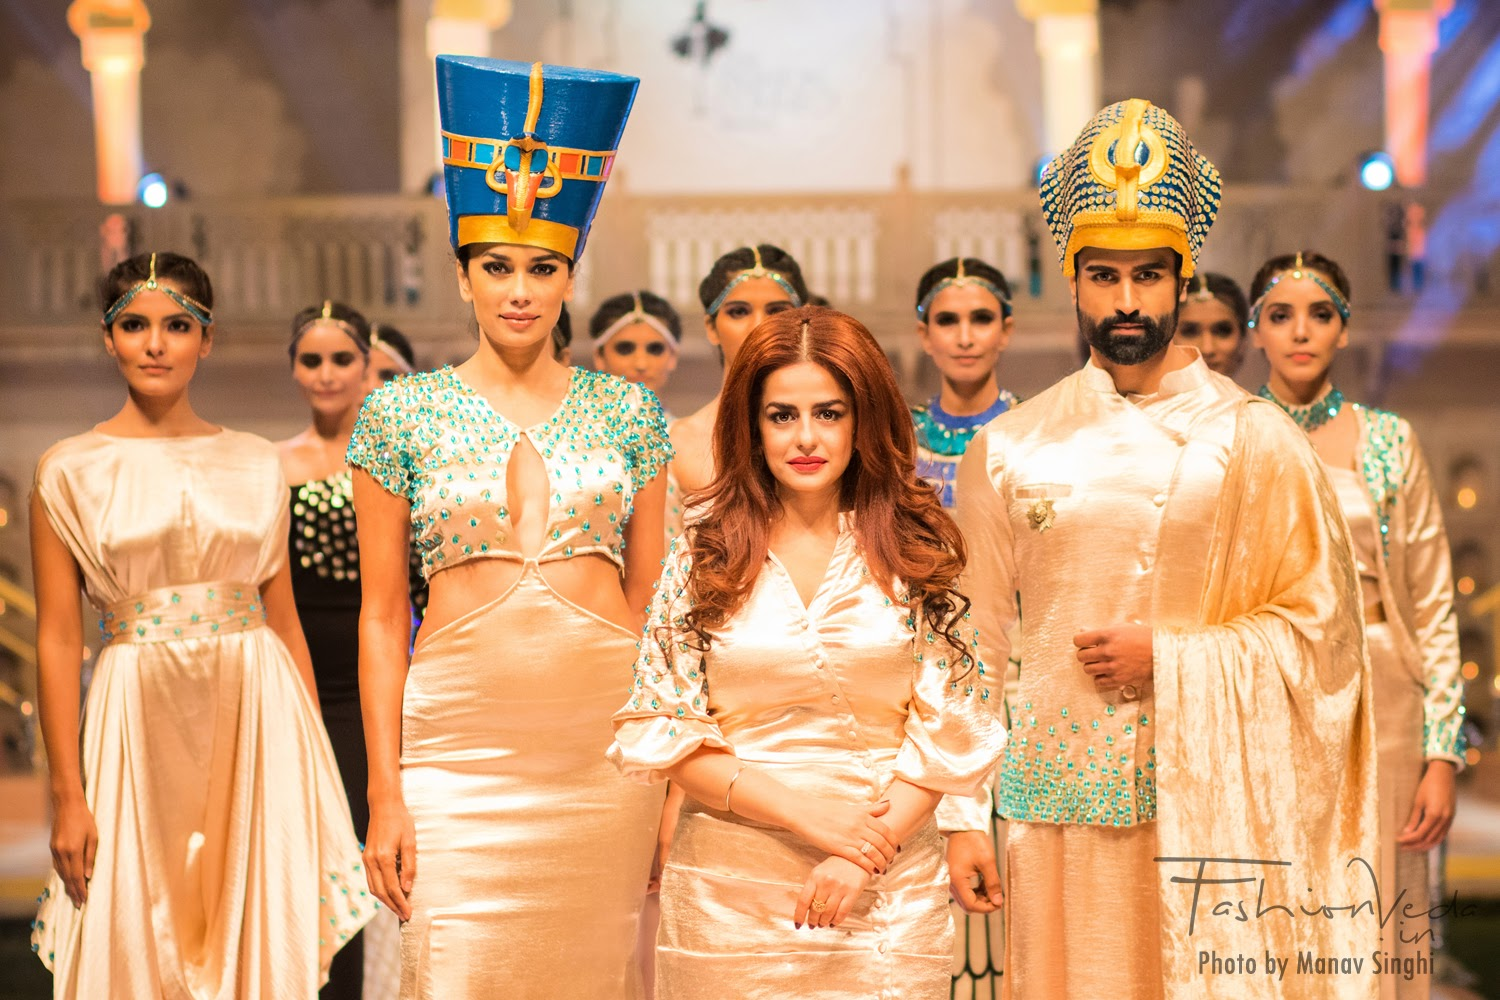 Collection by Bani Pasricha at Fashion Connect Show, Jaipur.